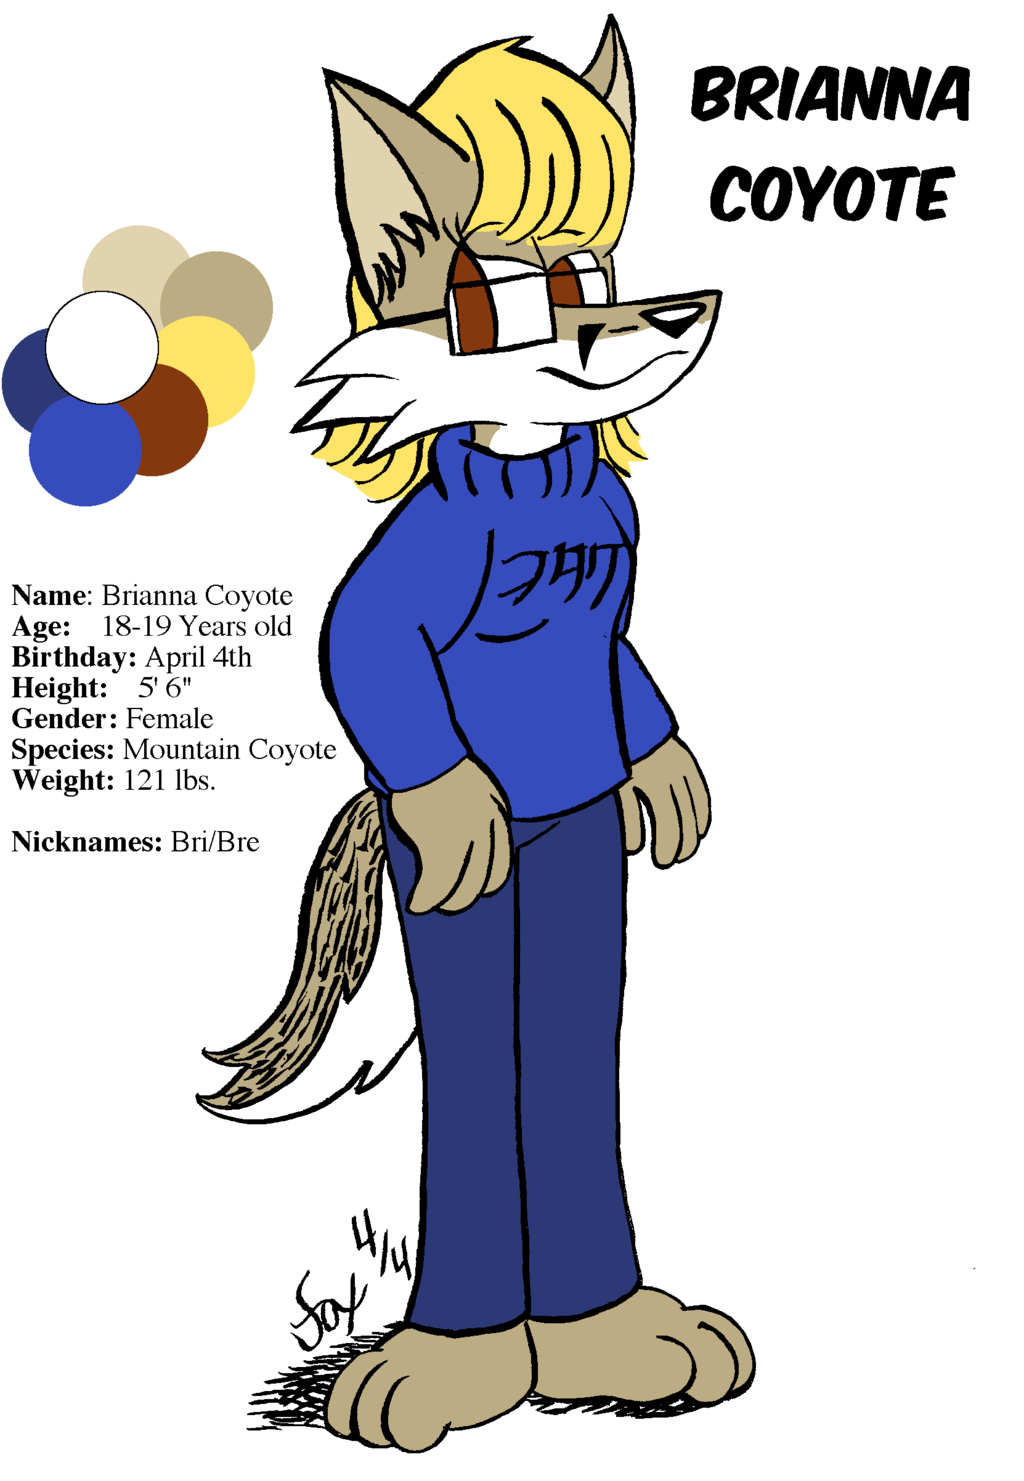 Introducing Brianna Coyote!